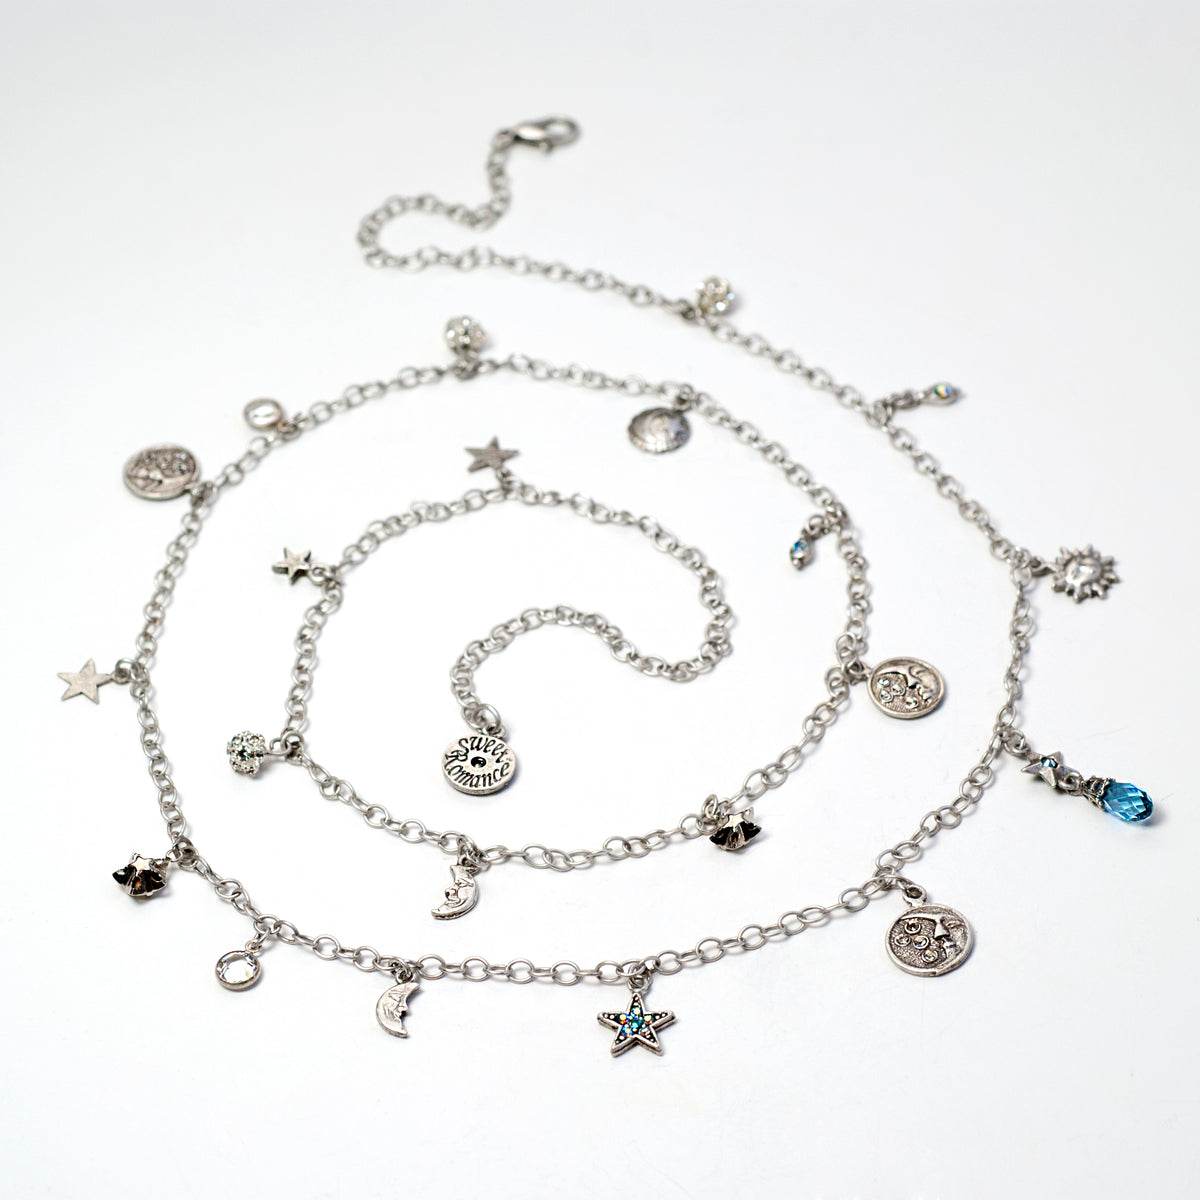 Celestial Charm Necklace N1641 - Sweet Romance Wholesale